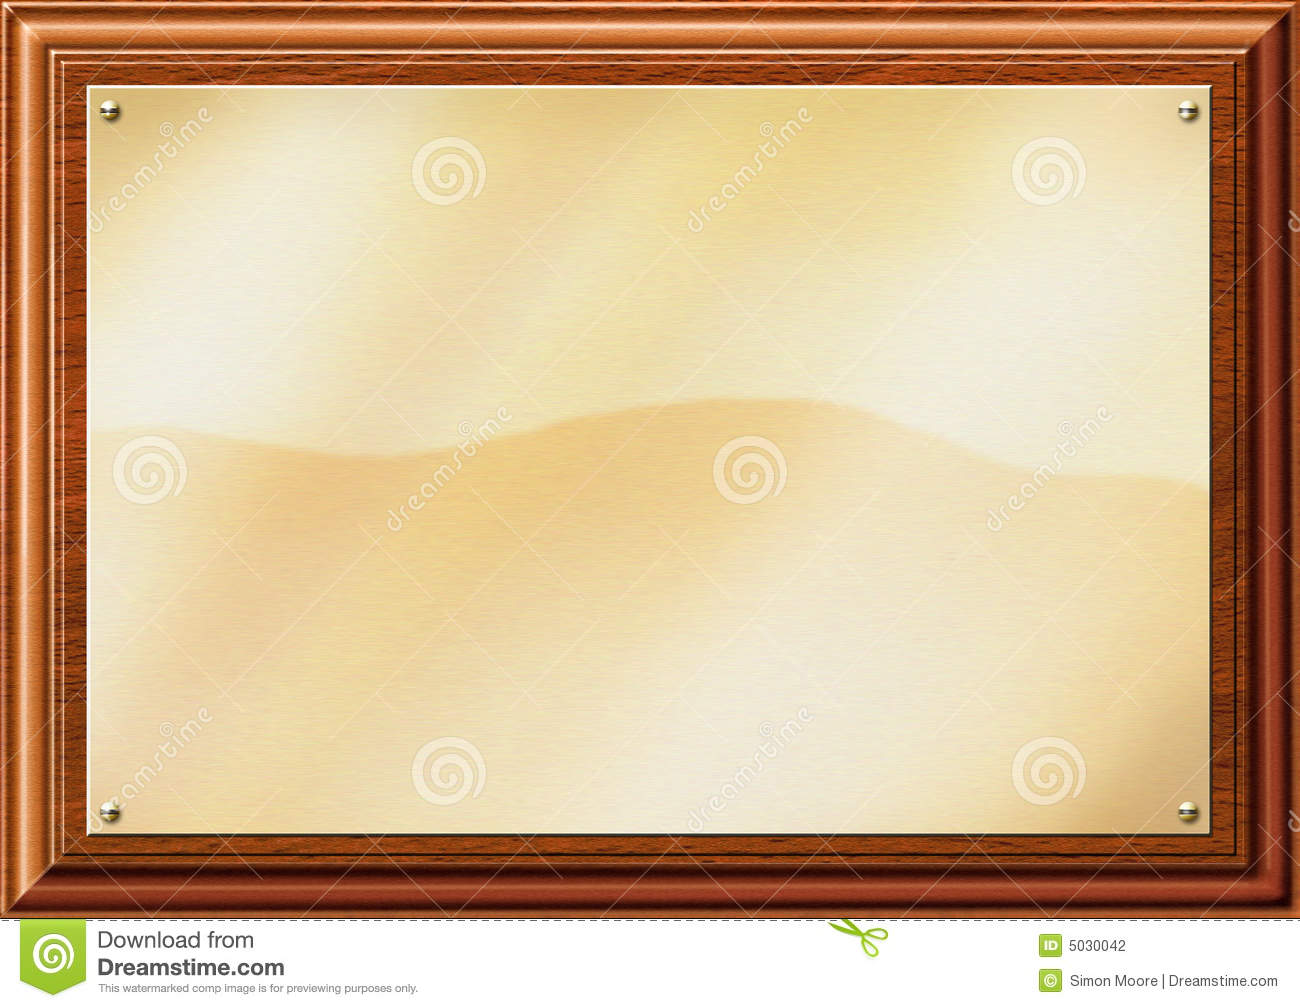 Brass Plaque Illustration Stock Photography - Image: 5030042